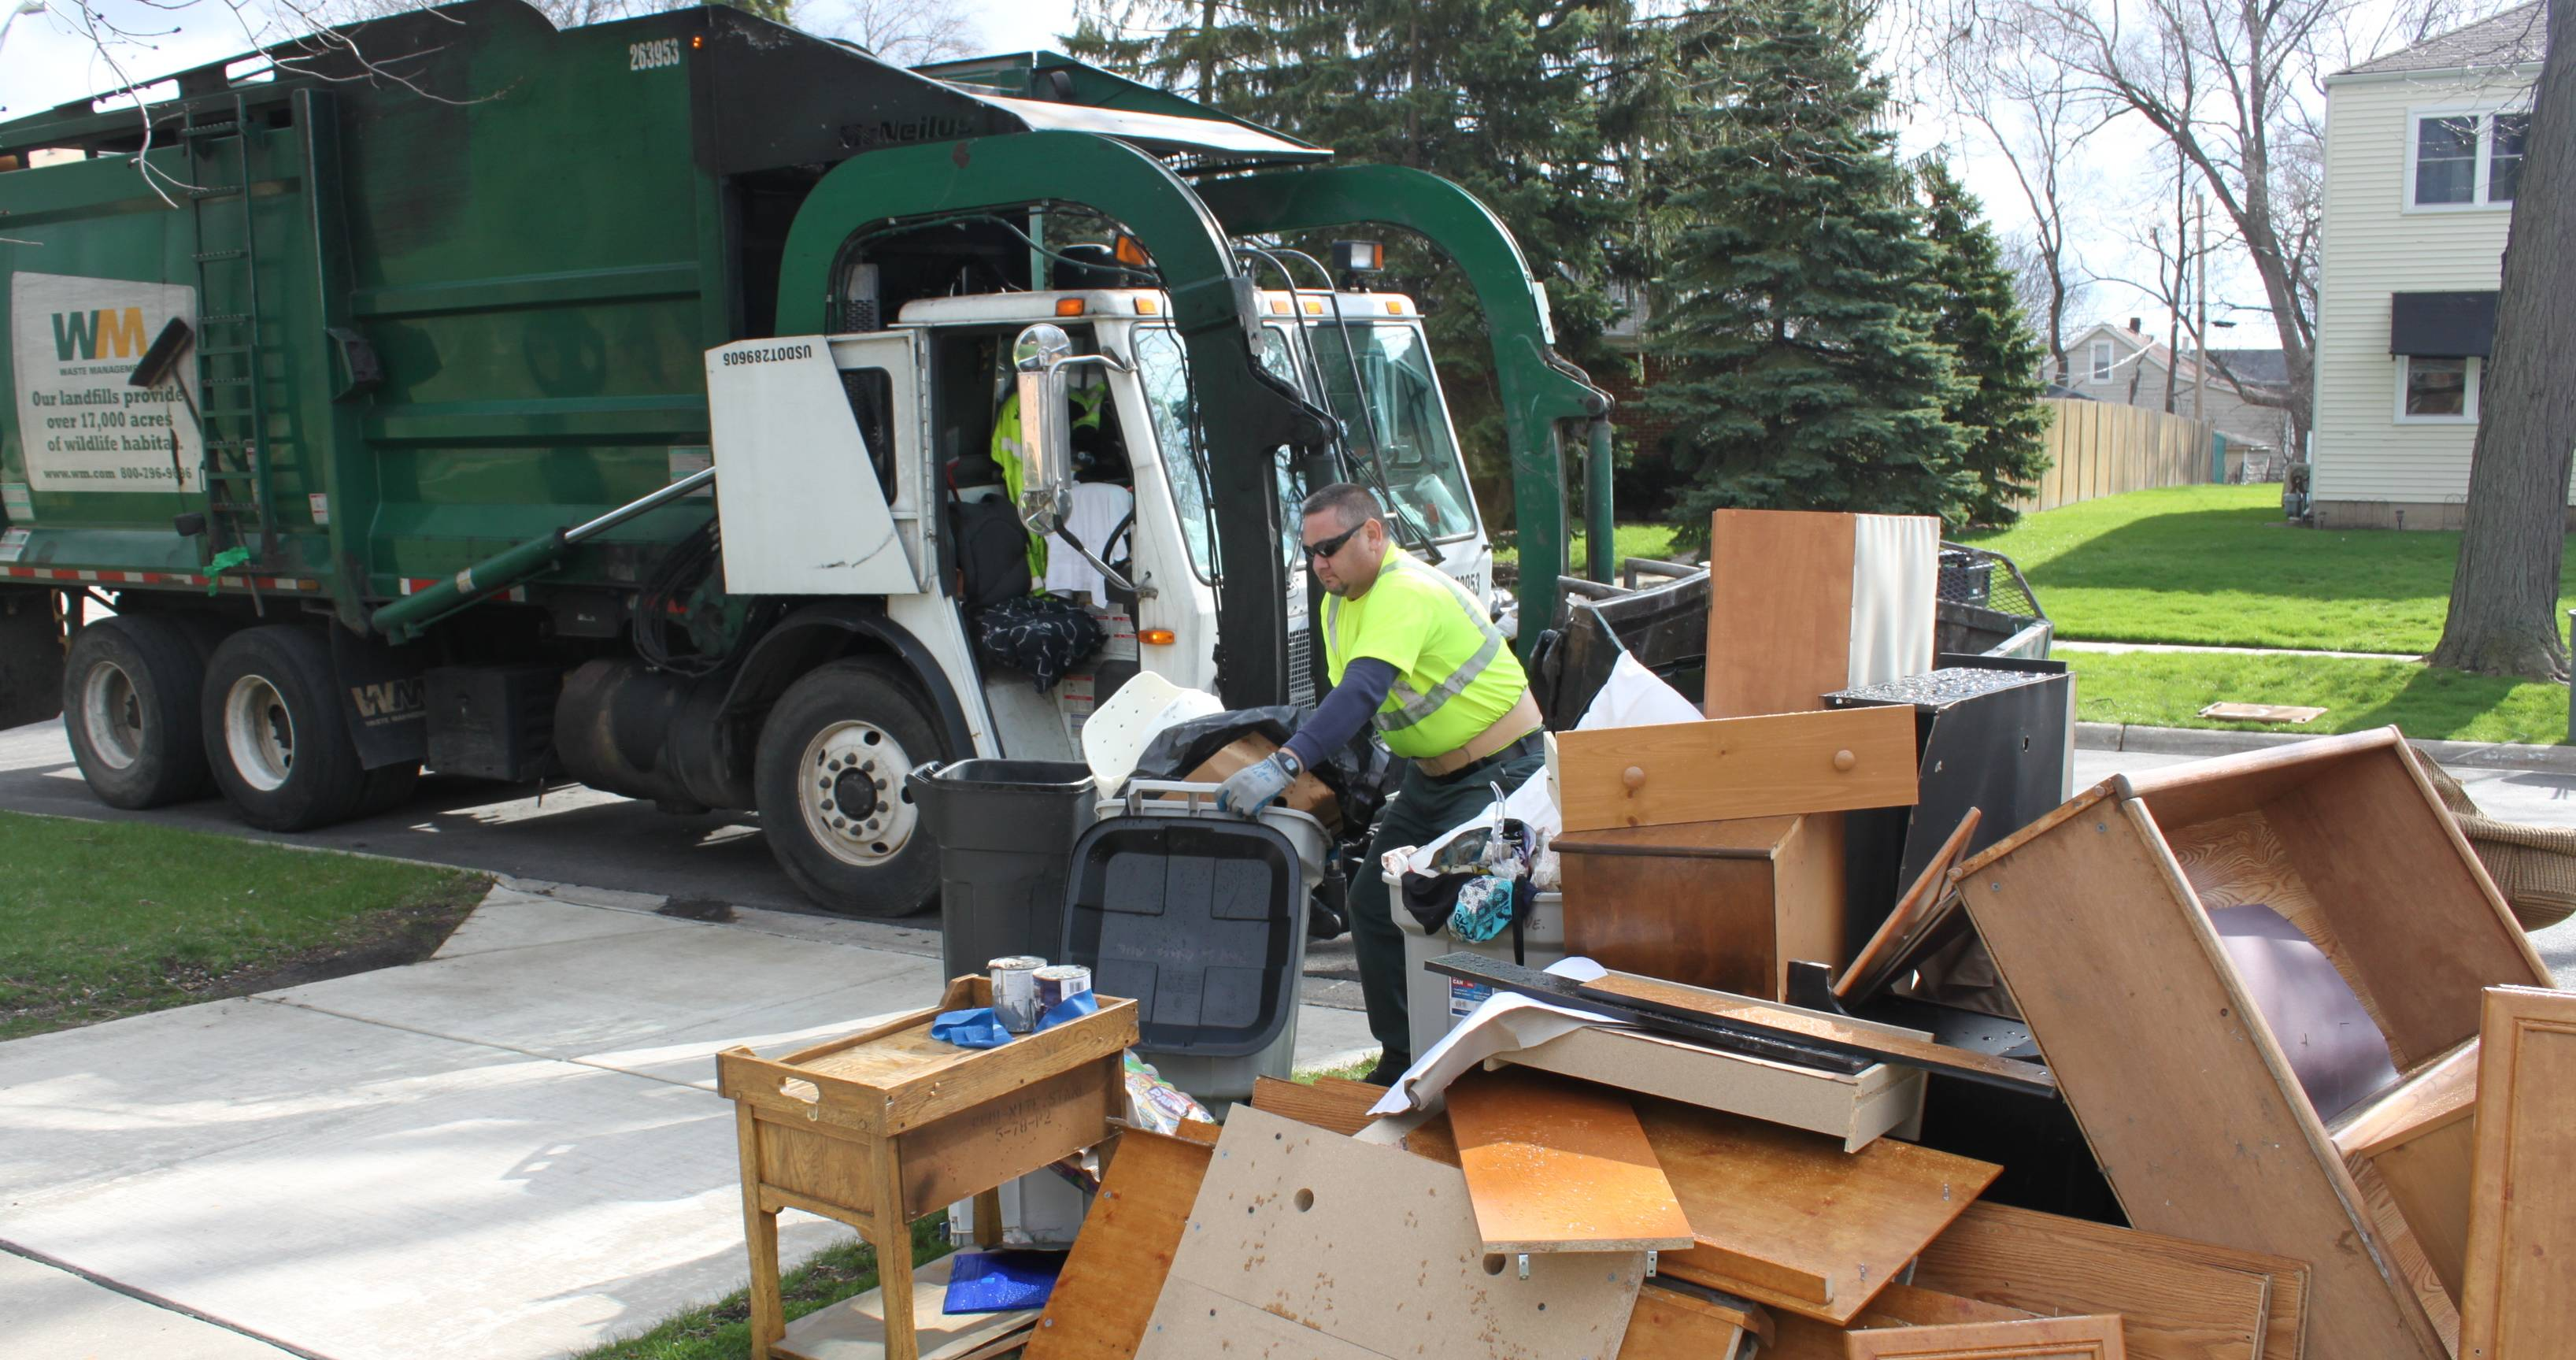 Waste Management driver Alfredo Sanchez hauls away  damaged furniture after heavy rains flooded basements in Lombard.